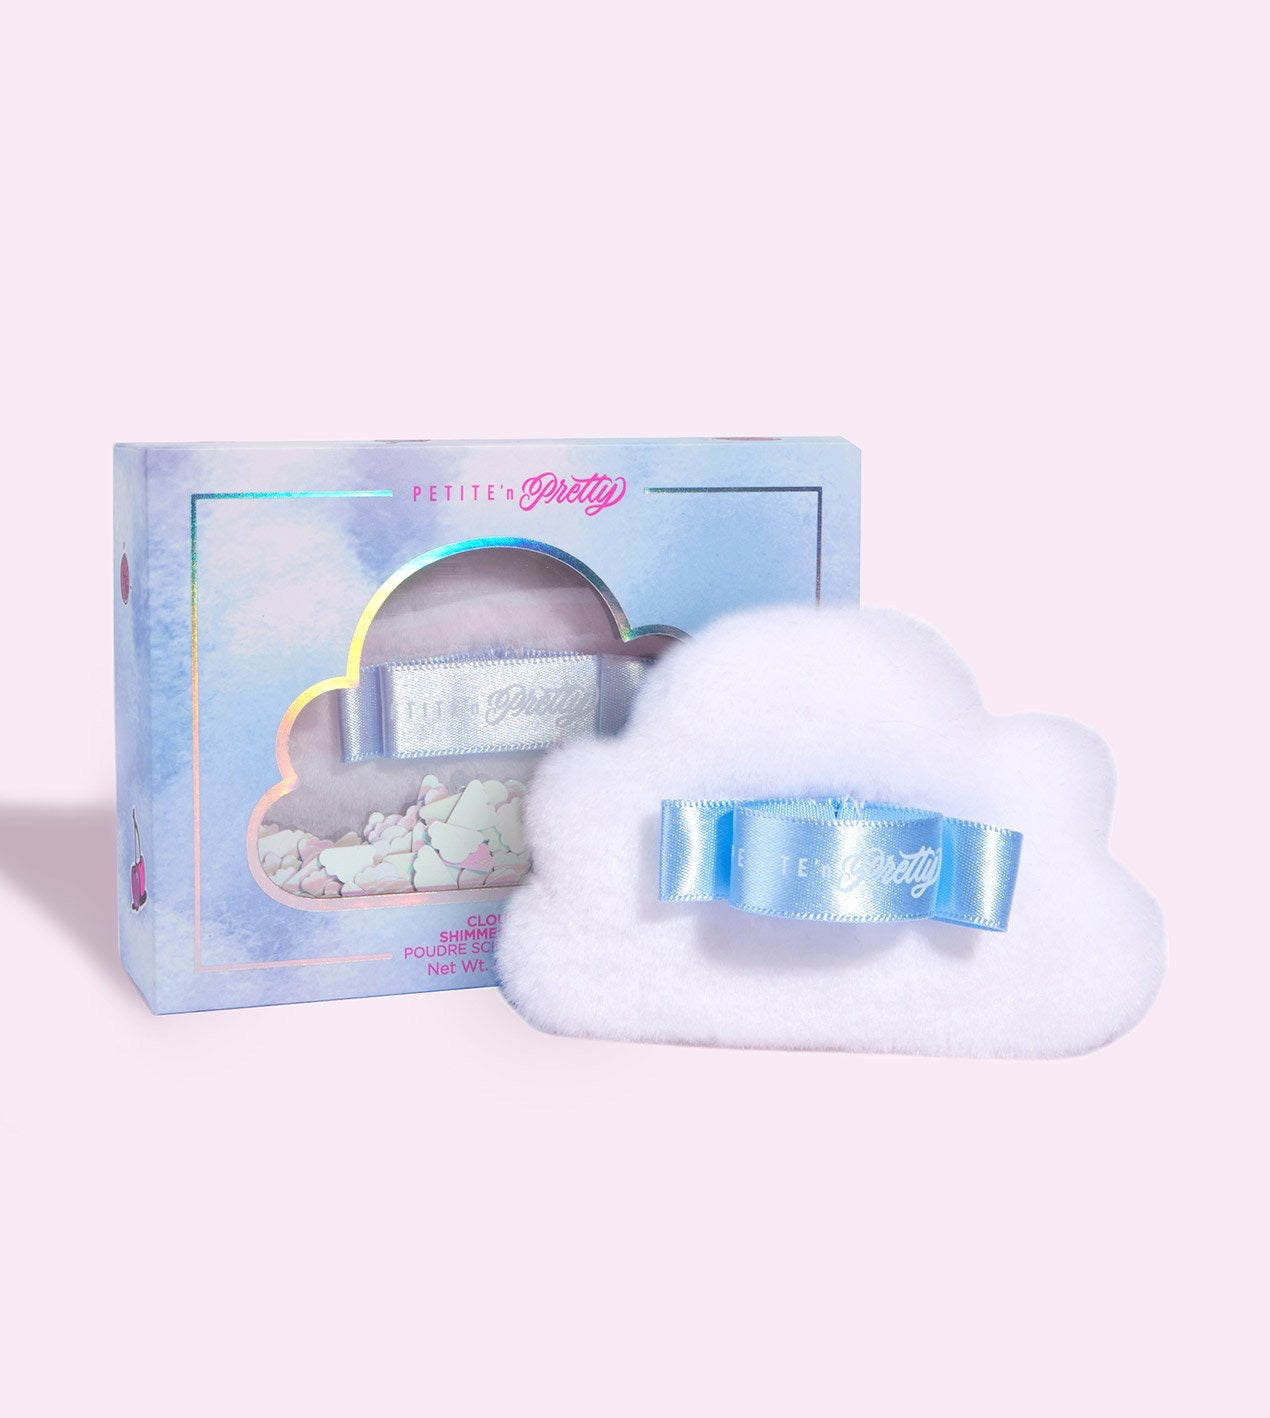 Cloud Shimmer Holiday Body Puff